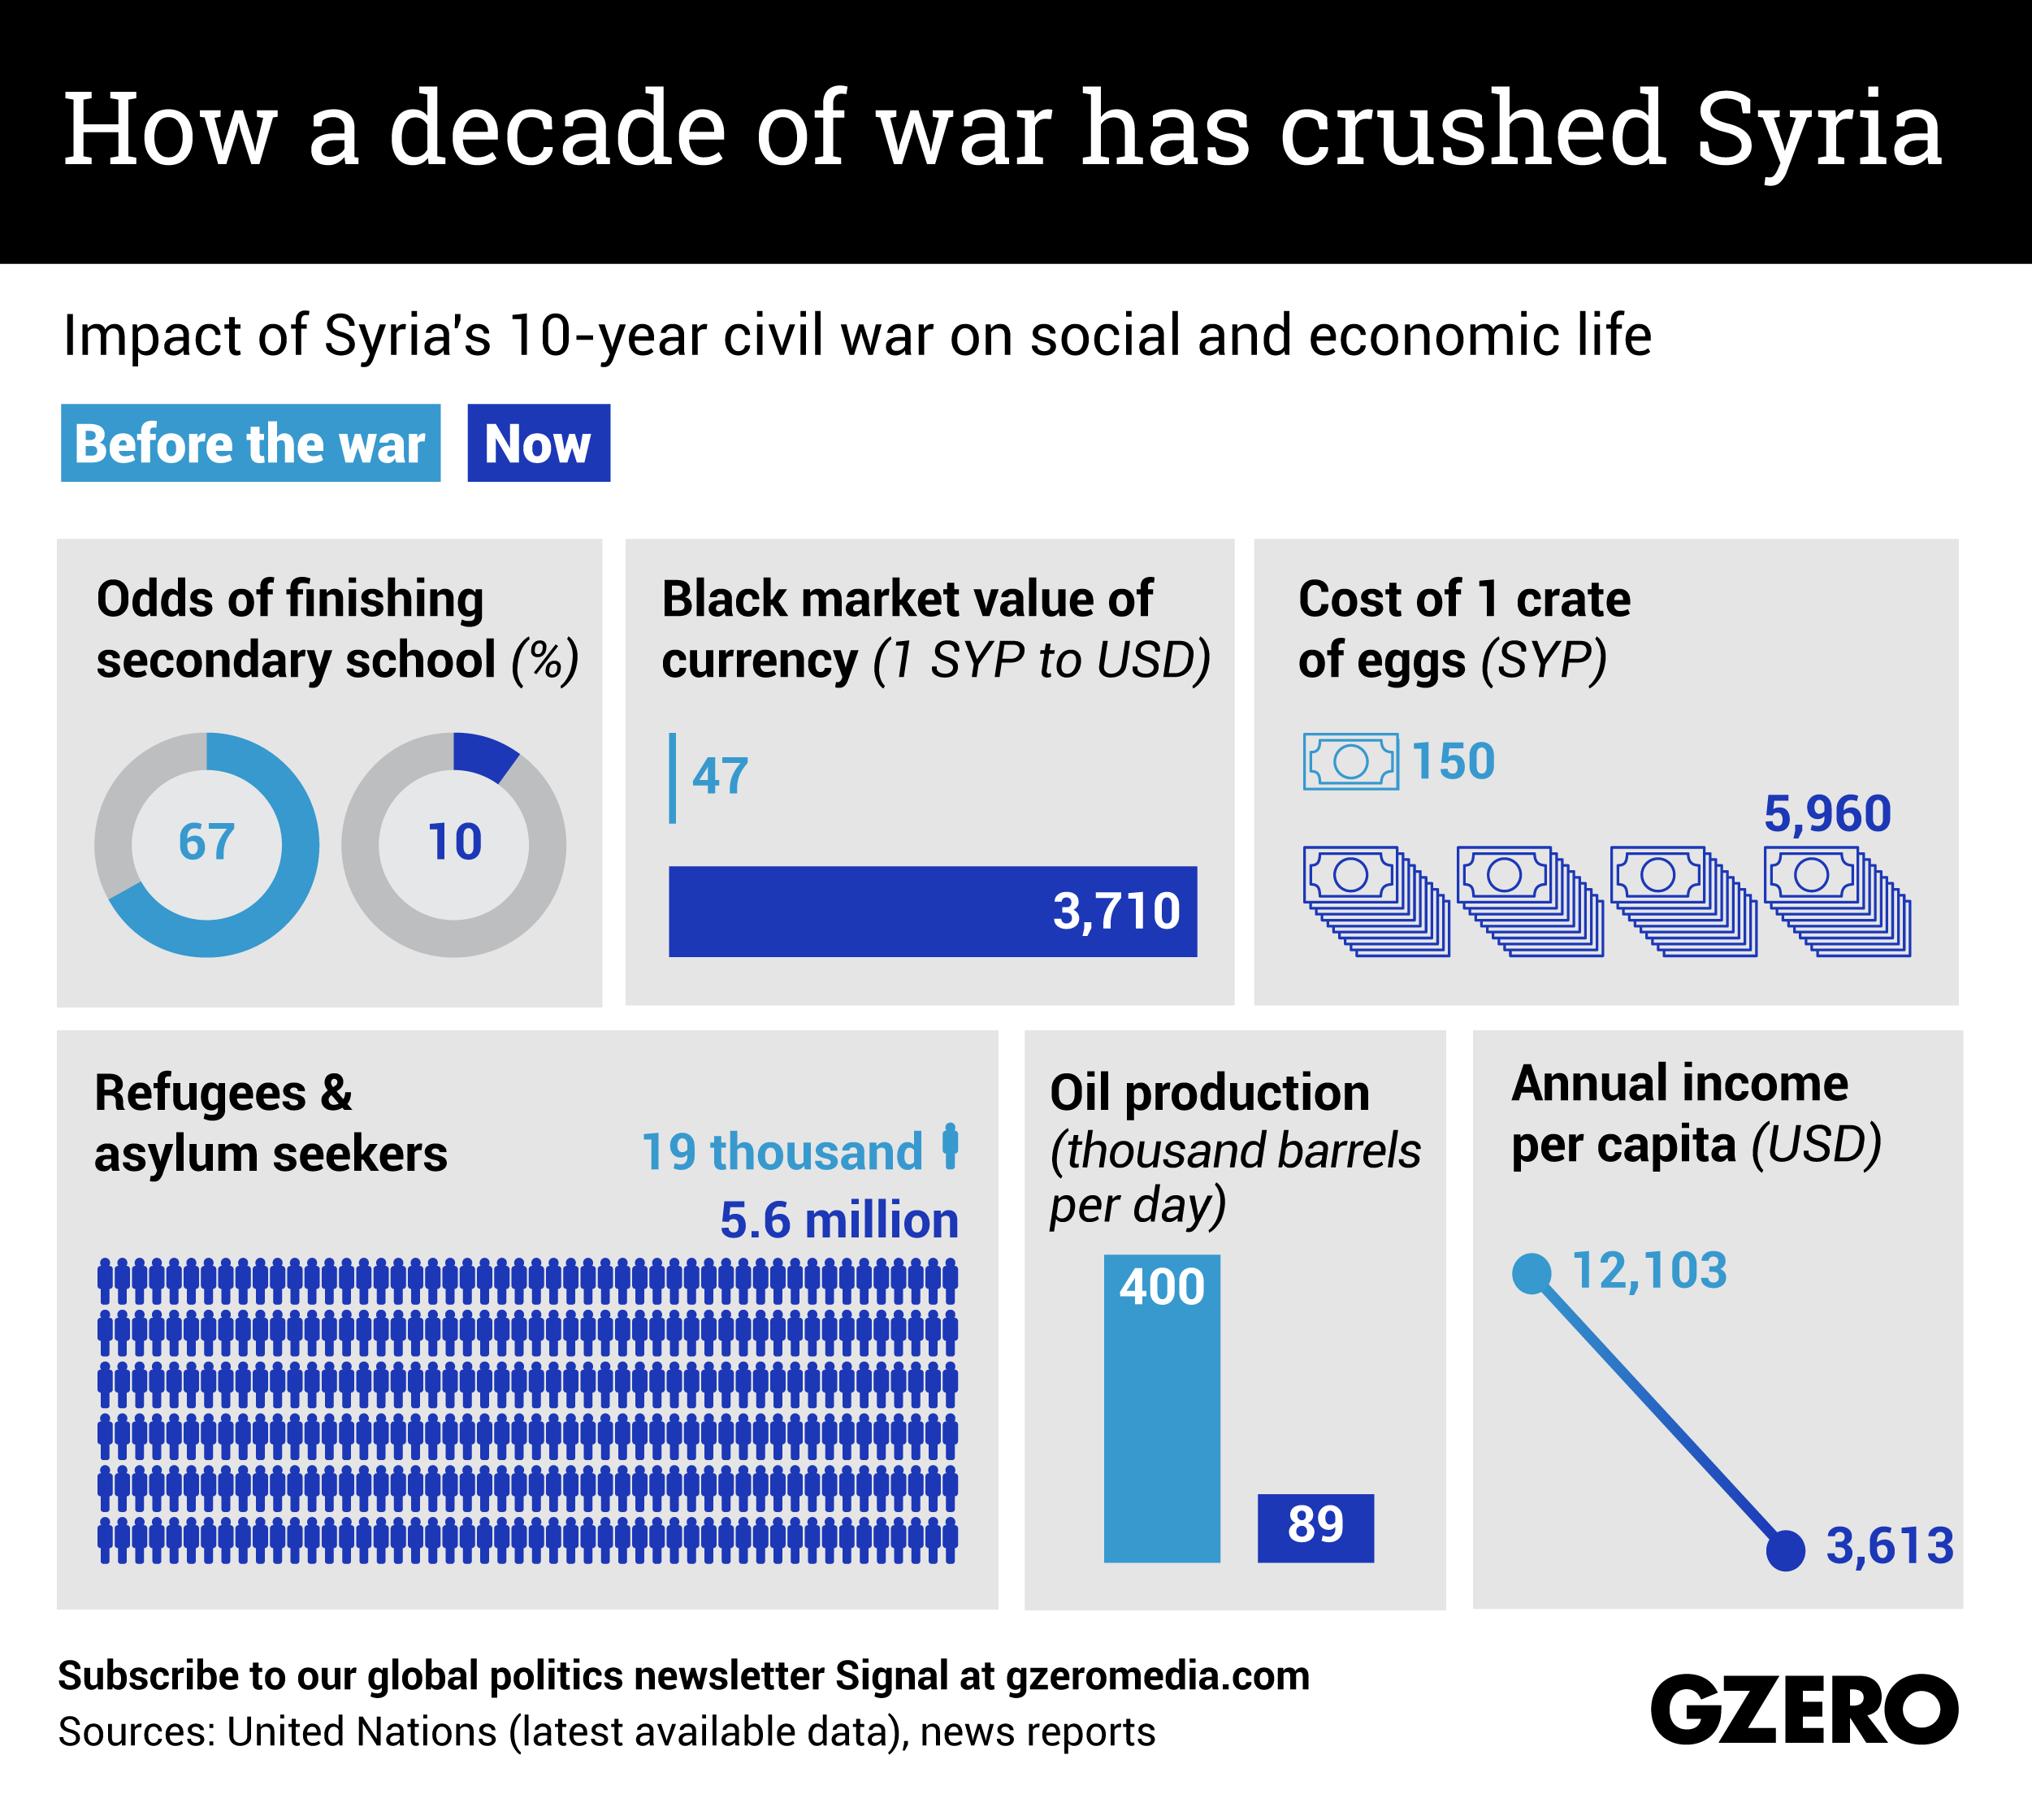 The Graphic Truth: How a decade of war has crushed Syria